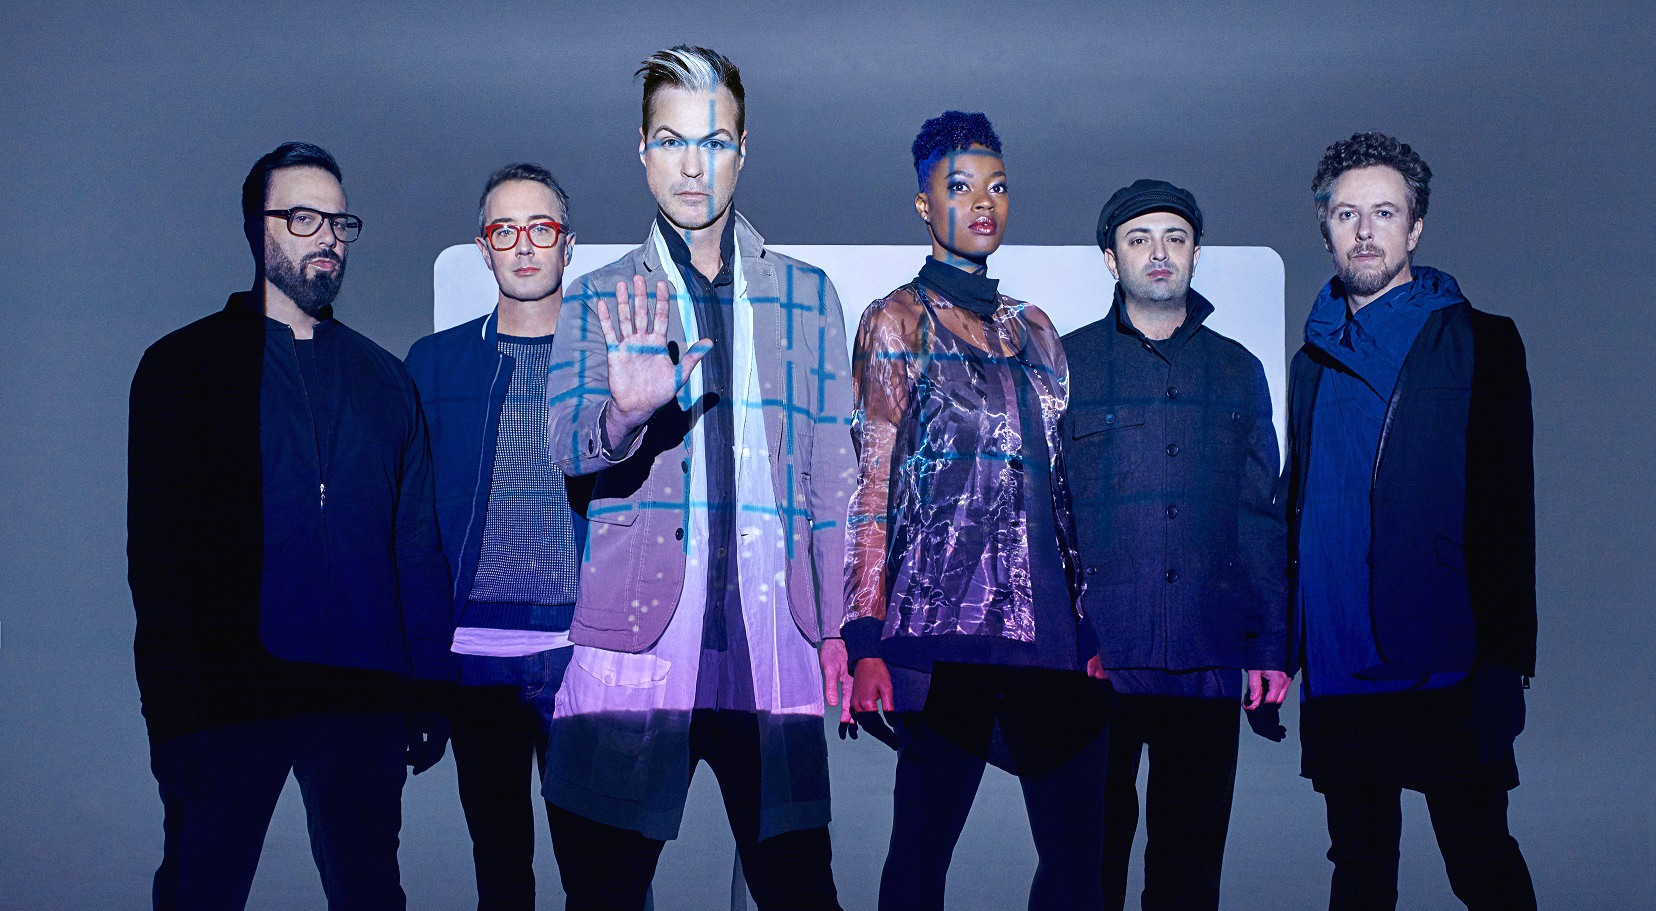 Fitz and the tantrums facebook